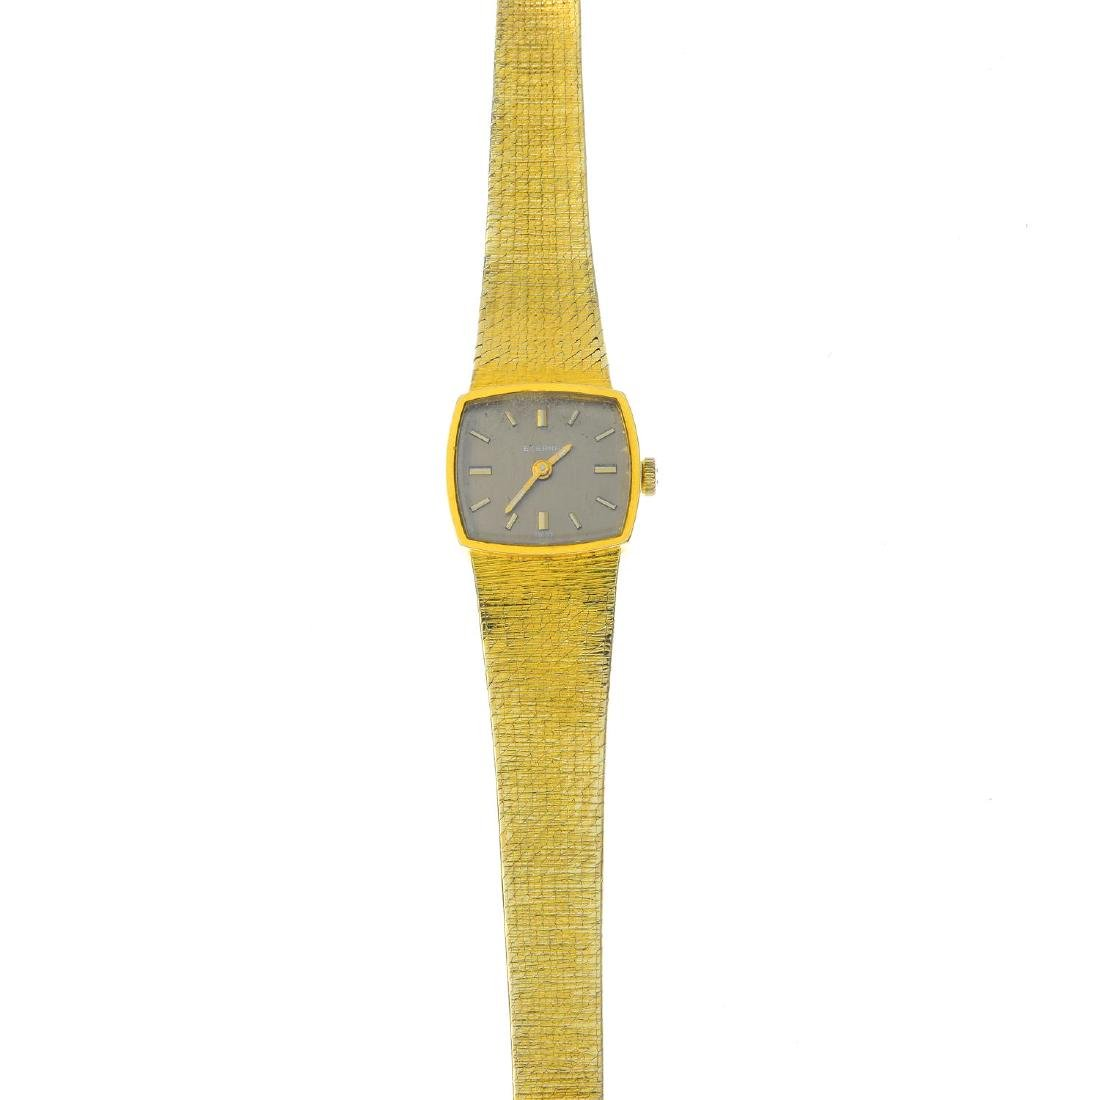 ETERNA - a lady's 1970s 9ct gold wristwatch. The brown